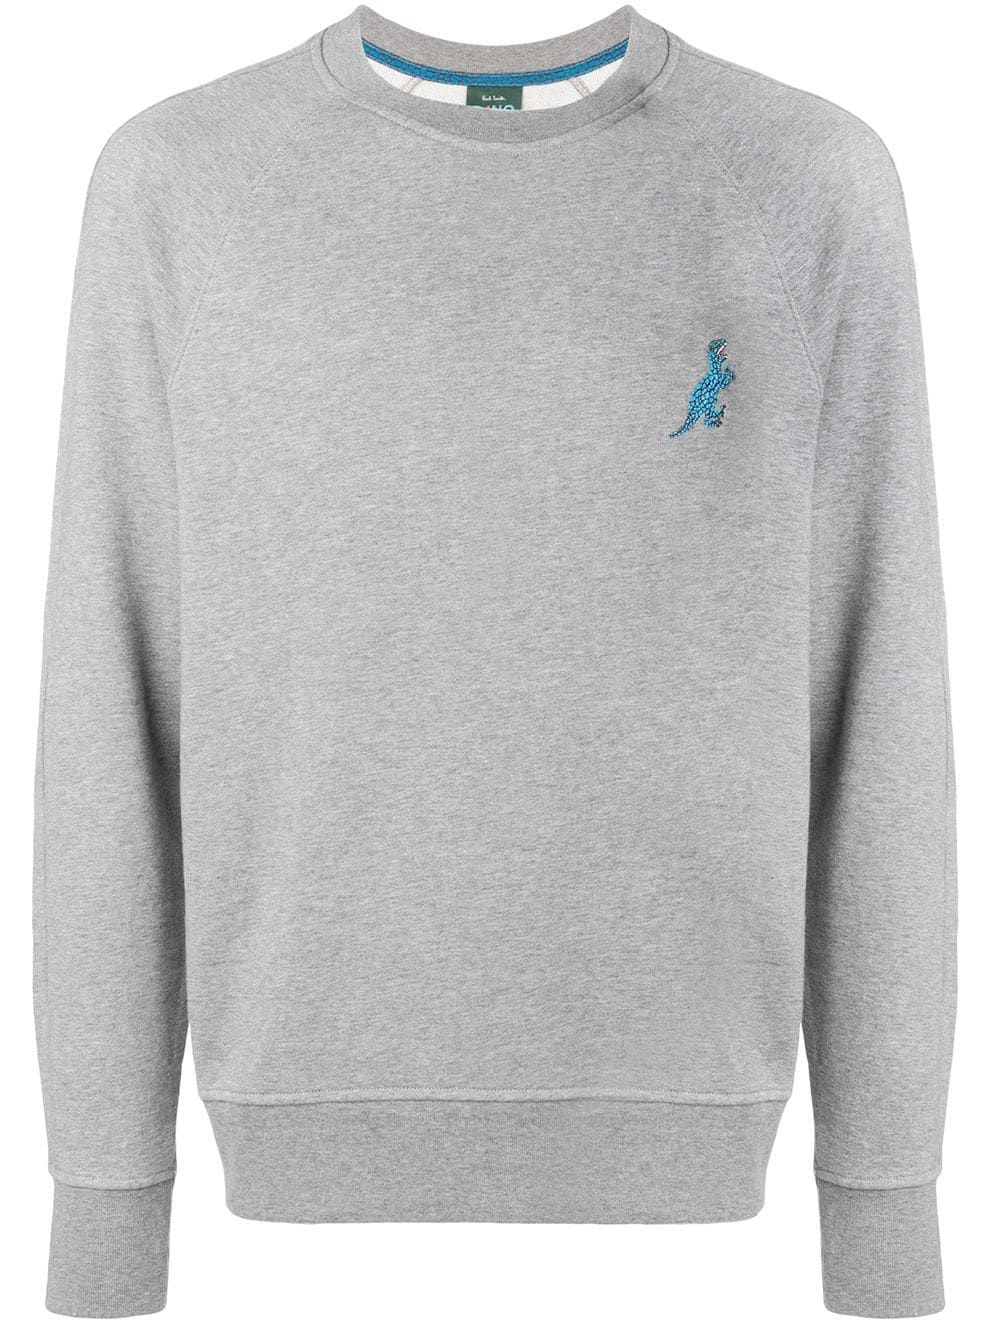 Ps Neck Jumper Grey Smith Crew By Paul b7IfyvY6g